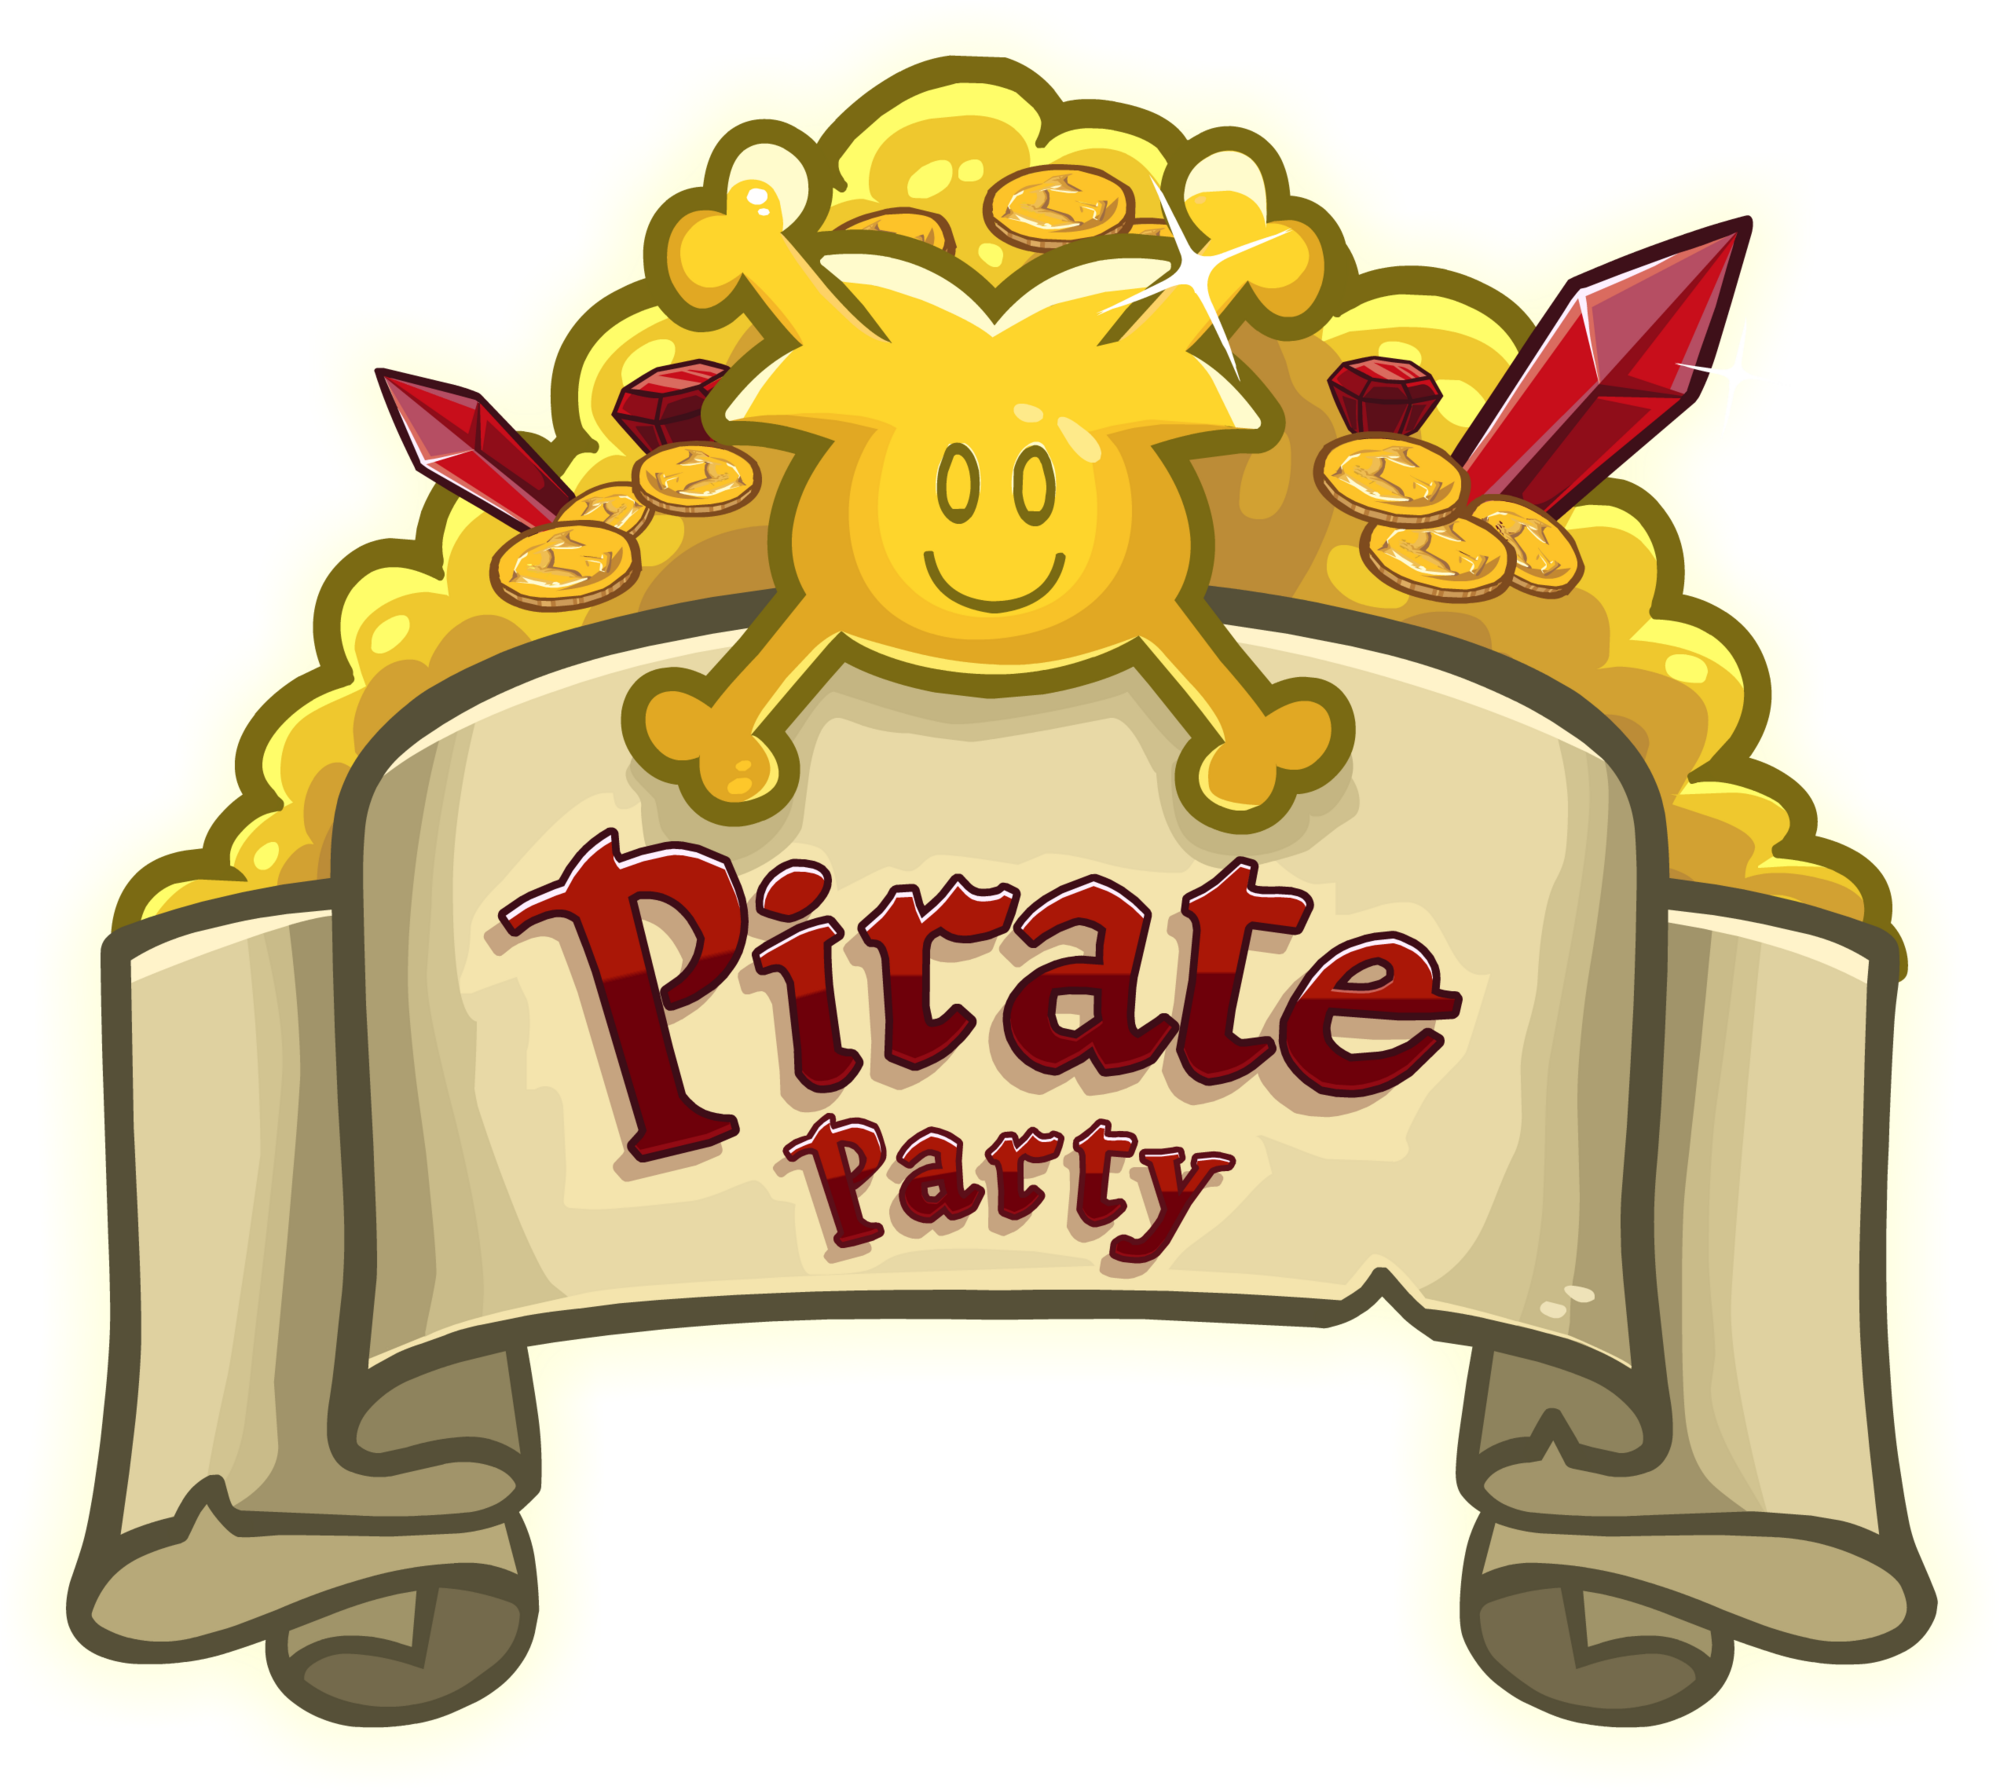 Pirate Party 2014 Club Penguin Wiki